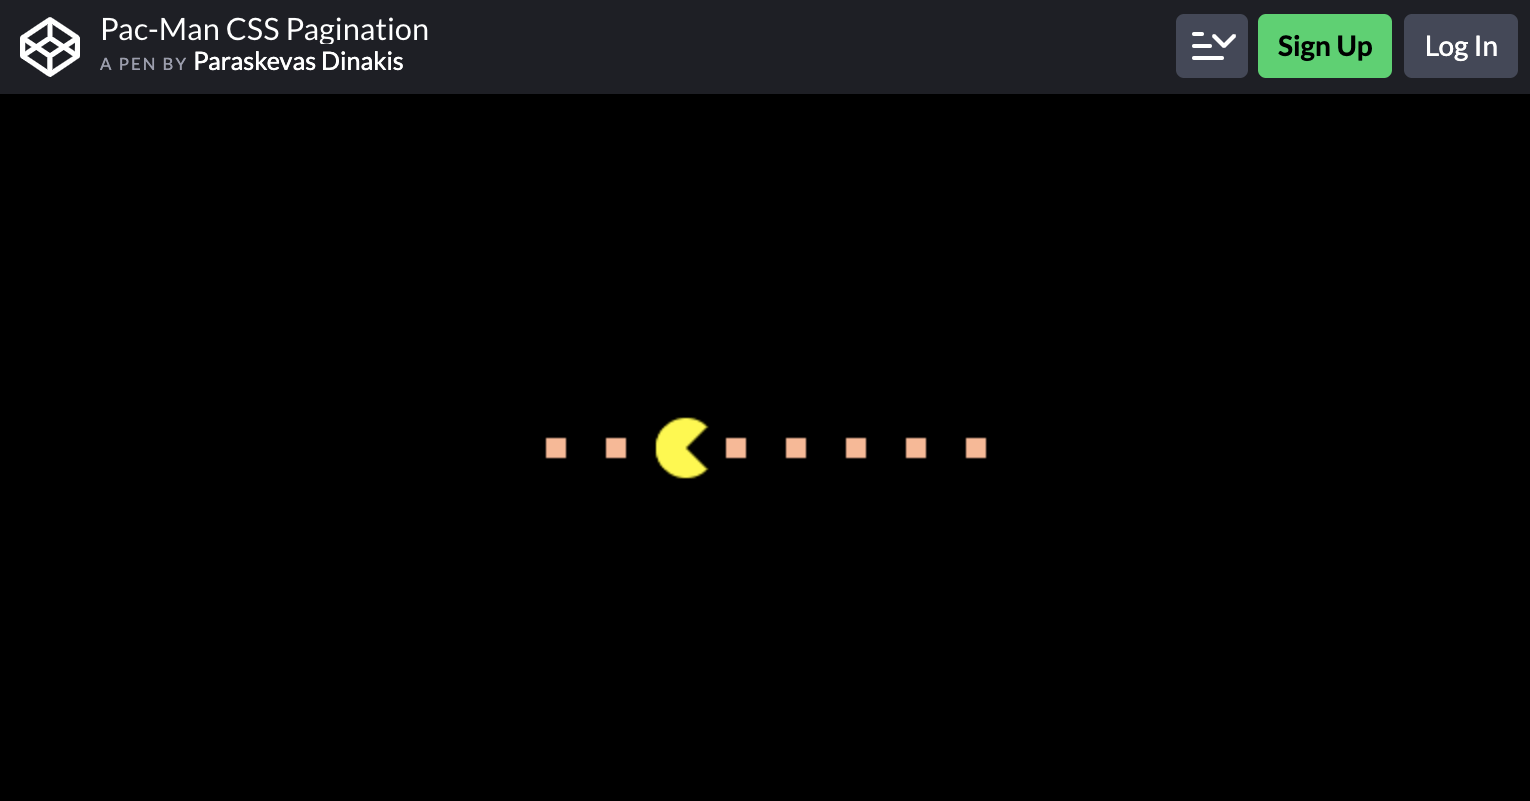 Pac-Man CSS Pagination